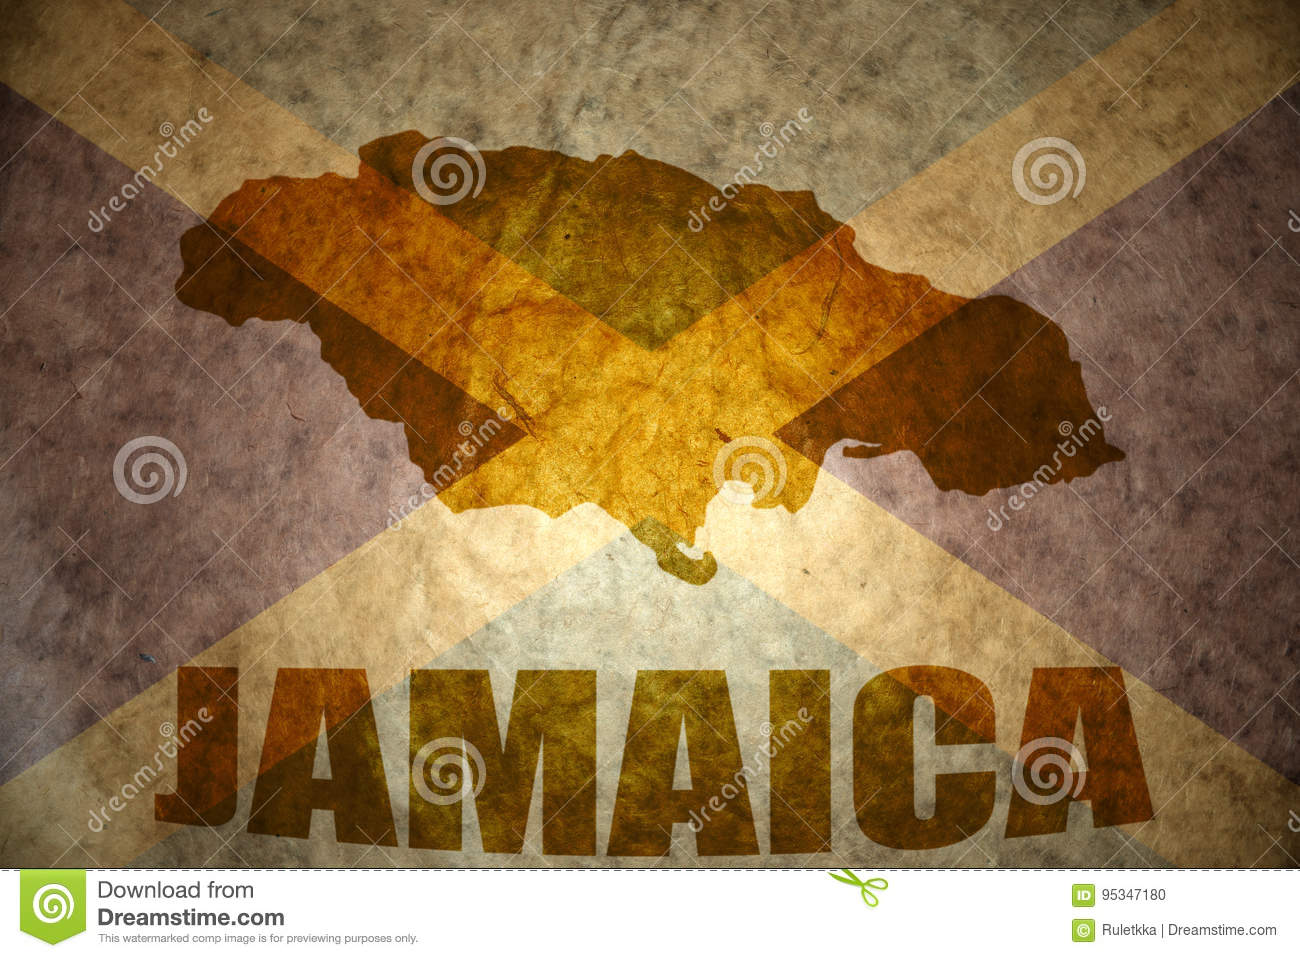 Jamaica Vintage Map Stock Photo Image Of History Ensign - Vintage map of jamaica